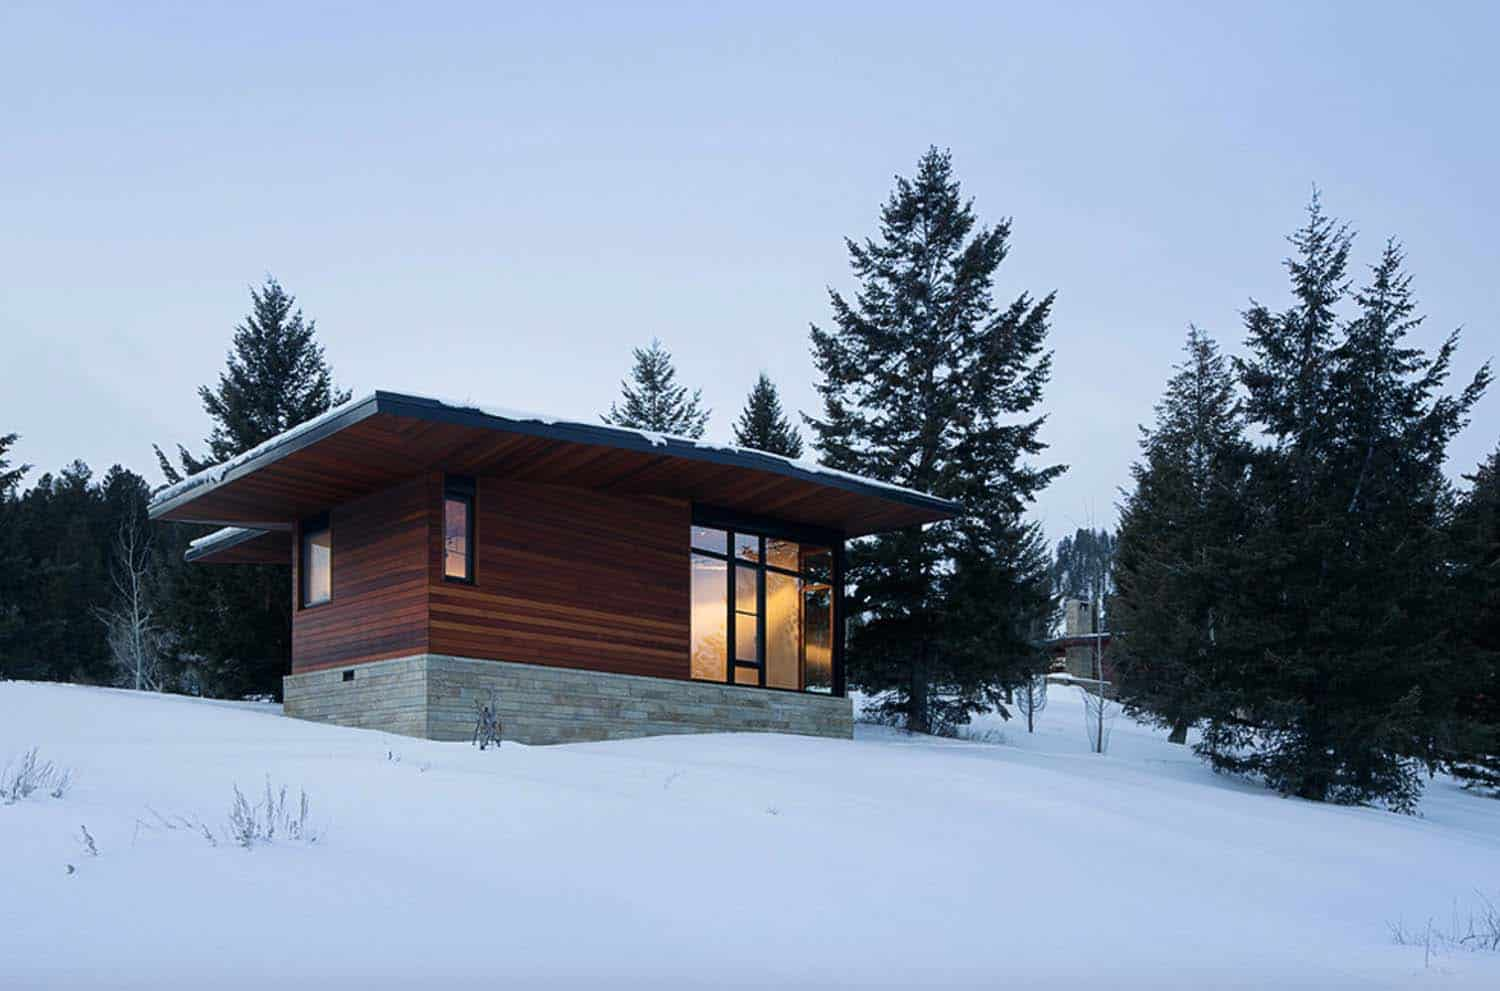 Contemporary Mountain Home-Carney Logan Burke Architects-28-1 Kindesign